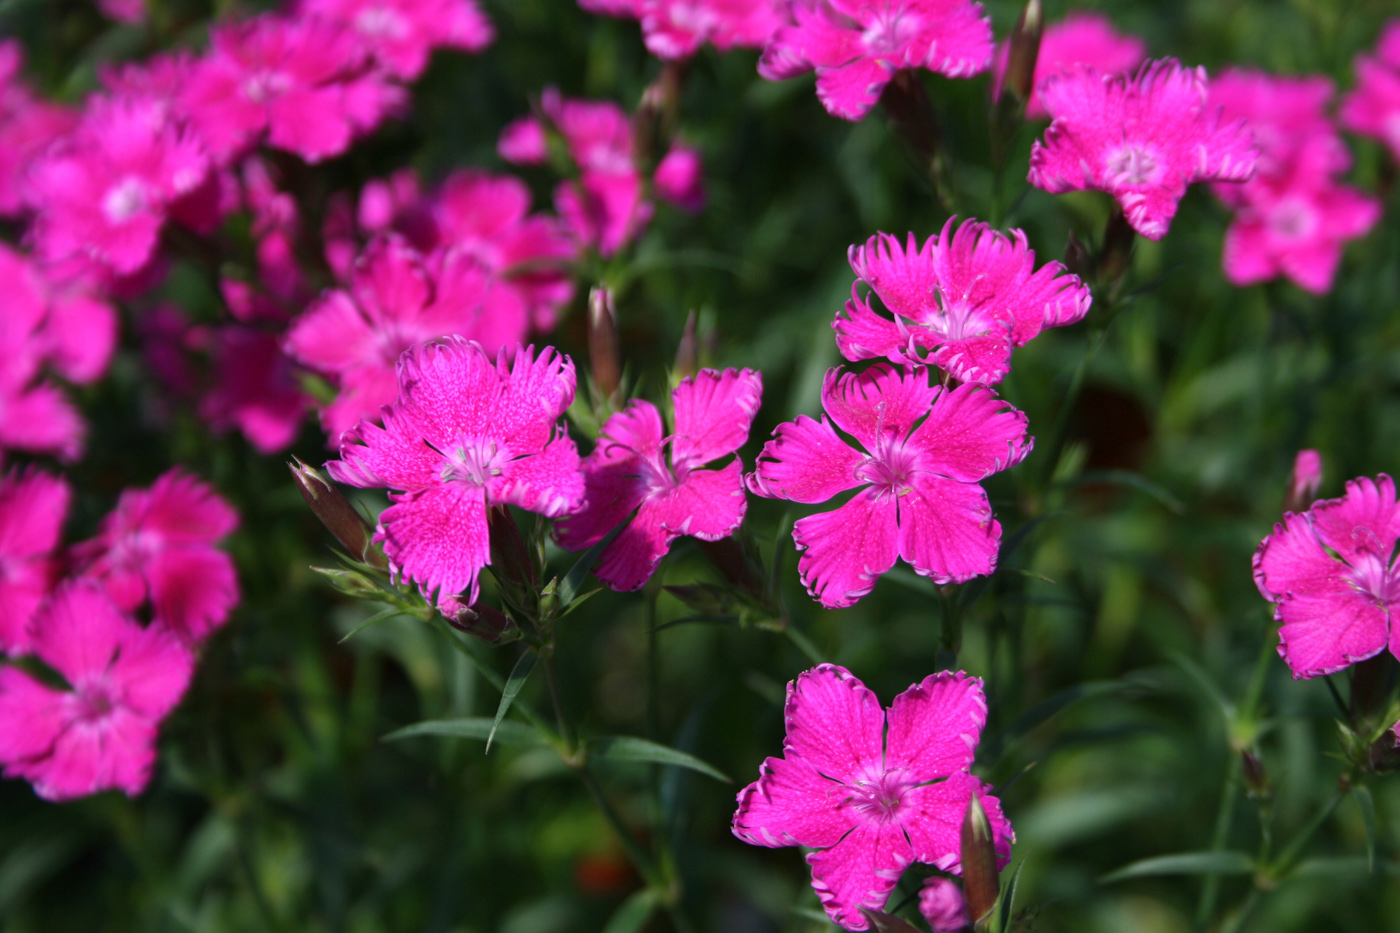 Grow pinks for an easy pretty garden mississippi state university the flowers of bouquet purple dianthus are a vivid dark pink with petals having tattered mightylinksfo Choice Image